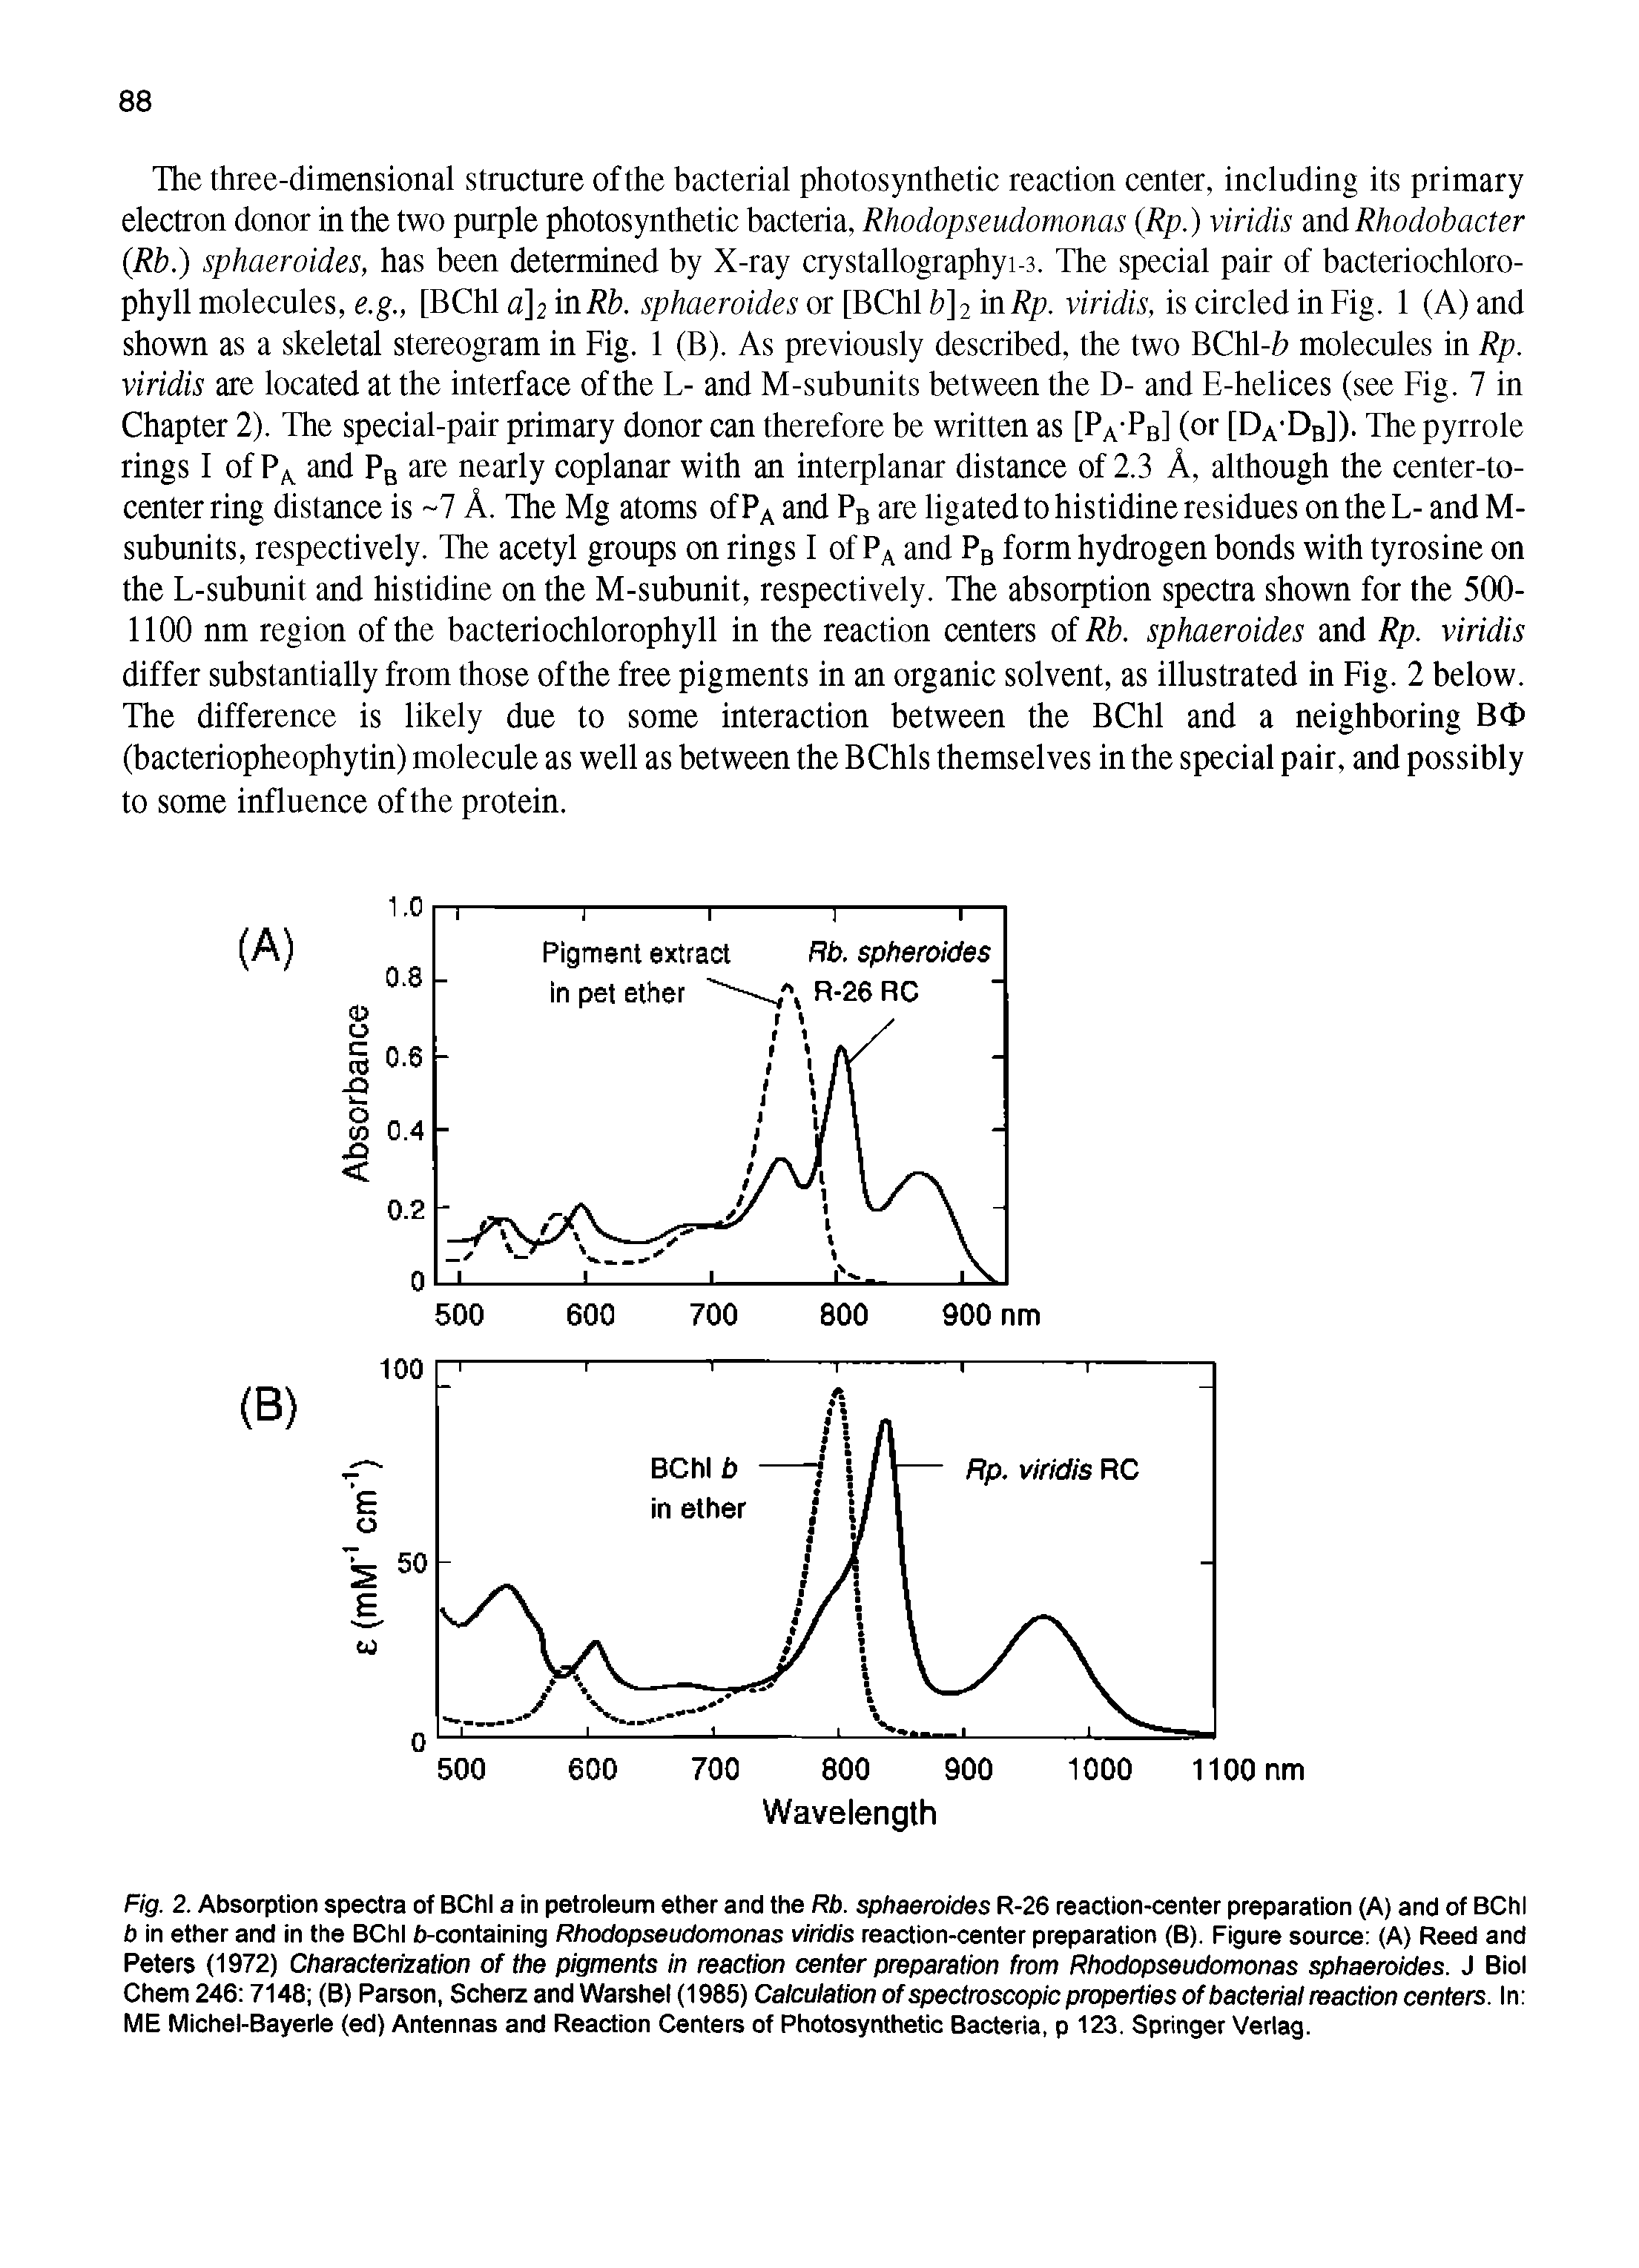 "Fig. 2. <a href=""/info/absorption_spectra"">Absorption spectra</a> of BChl a in <a href=""/info/petroleum_ether"">petroleum ether</a> and the Rb. sphaeroides R-26 <a href=""/info/reaction_center"">reaction-center</a> preparation (A) and of BChl b in ether and in the BChl b-containing <a href=""/info/rhodopseudomonas_viridis_reaction_centers"">Rhodopseudomonas viridis reaction-center</a> preparation (B). <a href=""/info/source_of_figures"">Figure source</a> (A) Reed and Peters (1972) Characterization of the pigments in <a href=""/info/reaction_center"">reaction center</a> <a href=""/info/preparation_from"">preparation from</a> <a href=""/info/rhodopseudomonas_sphaeroides"">Rhodopseudomonas sphaeroides</a>. J Biol Chem 246 7148 (B) Parson, Scherz and Warshel (1985) Calculation of <a href=""/info/property_spectroscopic"">spectroscopic properties</a> of <a href=""/info/bacterial_reaction_centers"">bacterial reaction centers</a>. In ME Michel-Bayerle (ed) Antennas and <a href=""/info/reaction_center"">Reaction Centers</a> of <a href=""/info/bacteria_photosynthetic"">Photosynthetic Bacteria</a>, p 123. Springer Verlag."